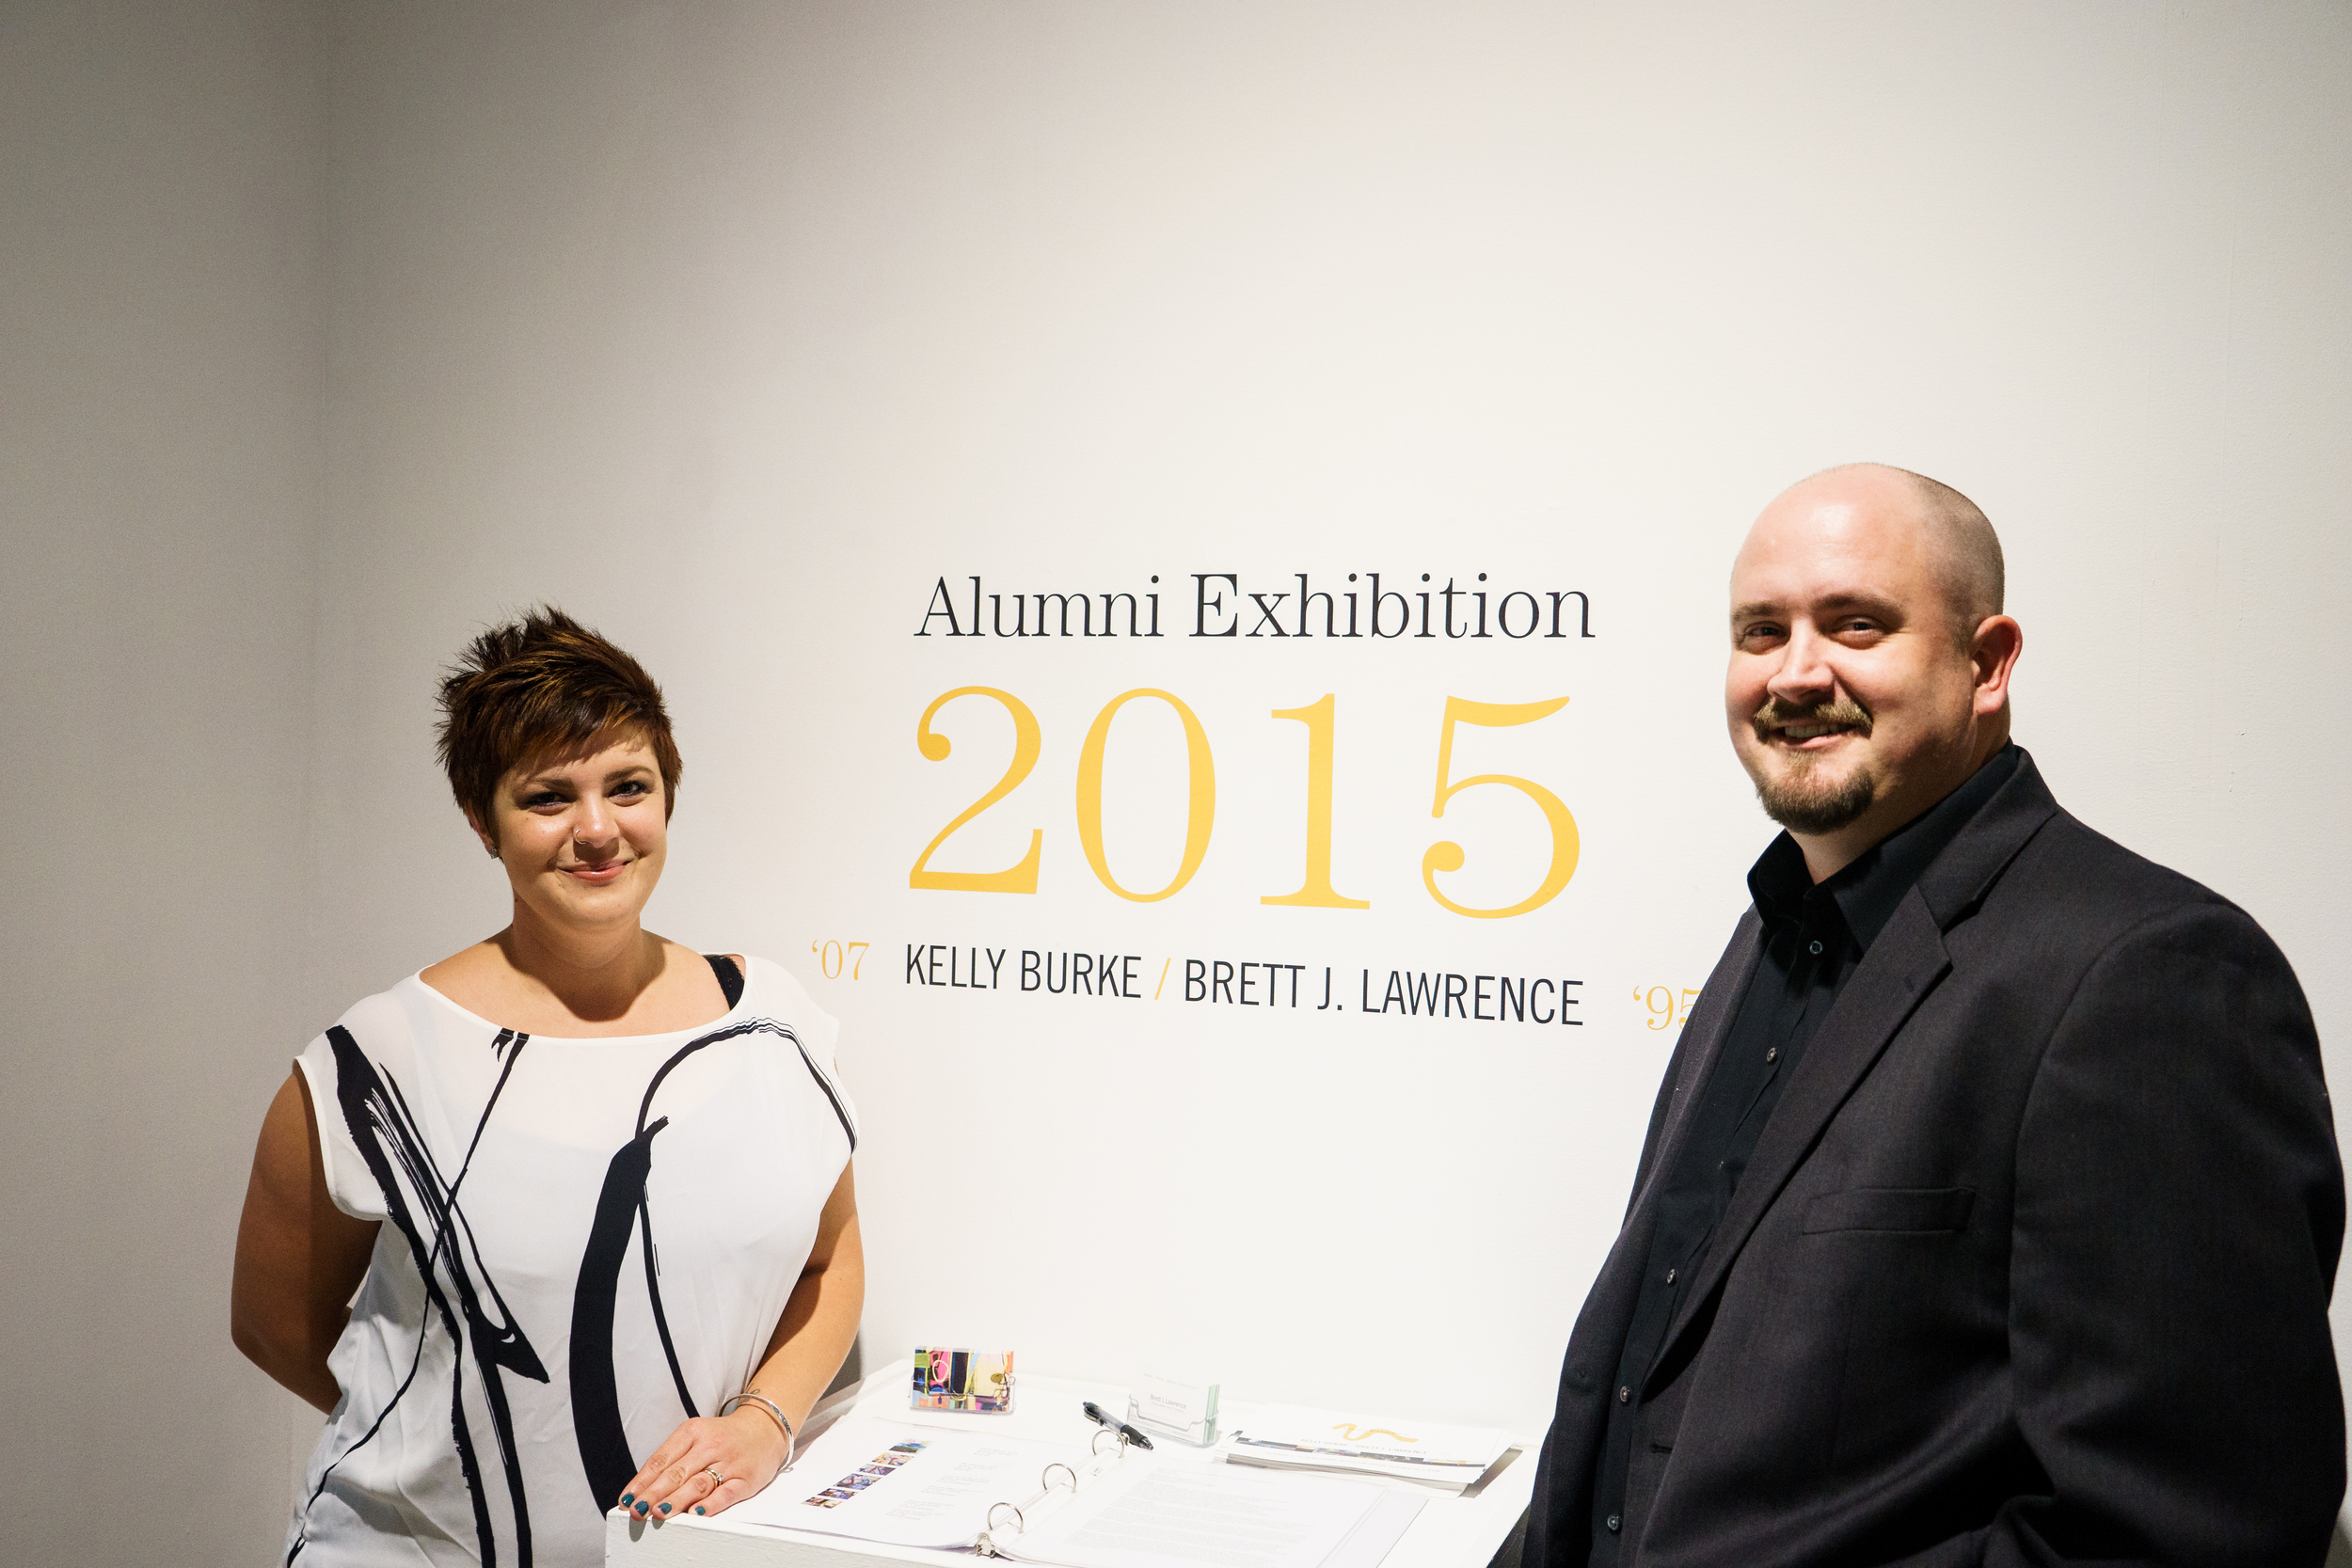 AlumniGalleryReception-10.16.2015-06.jpg